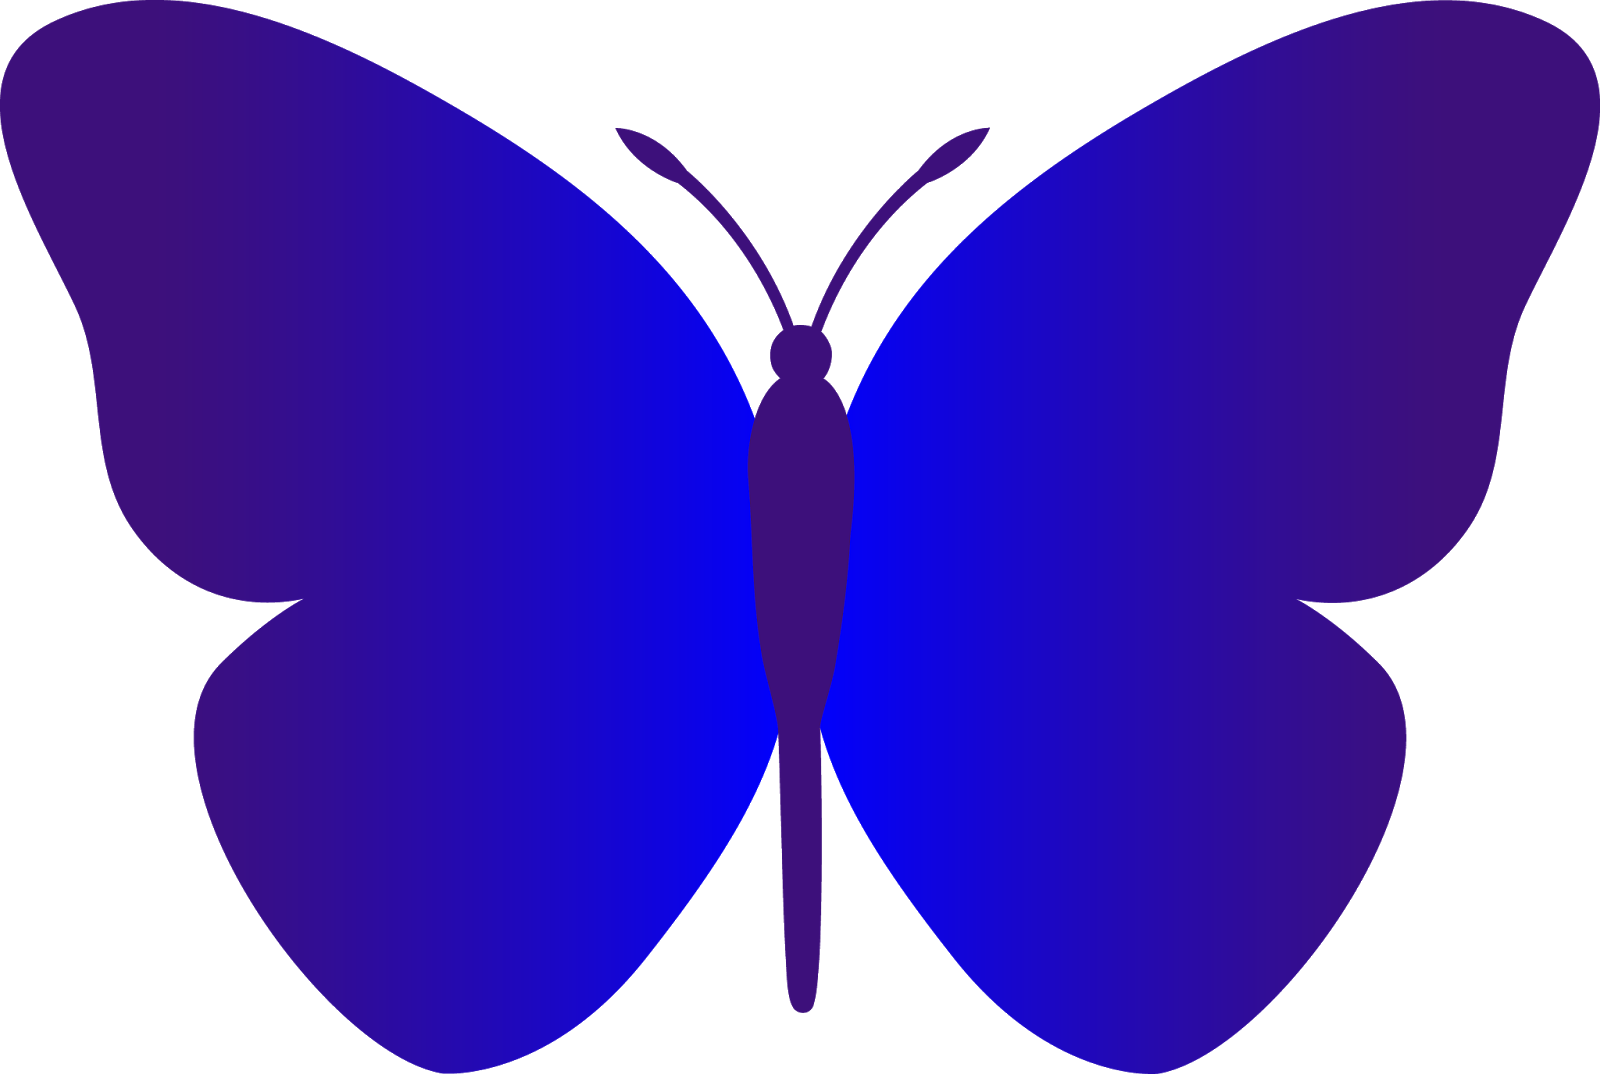 Simple Butterfly Clip Art Hd Images 3 HD Wallpapers | amagico.